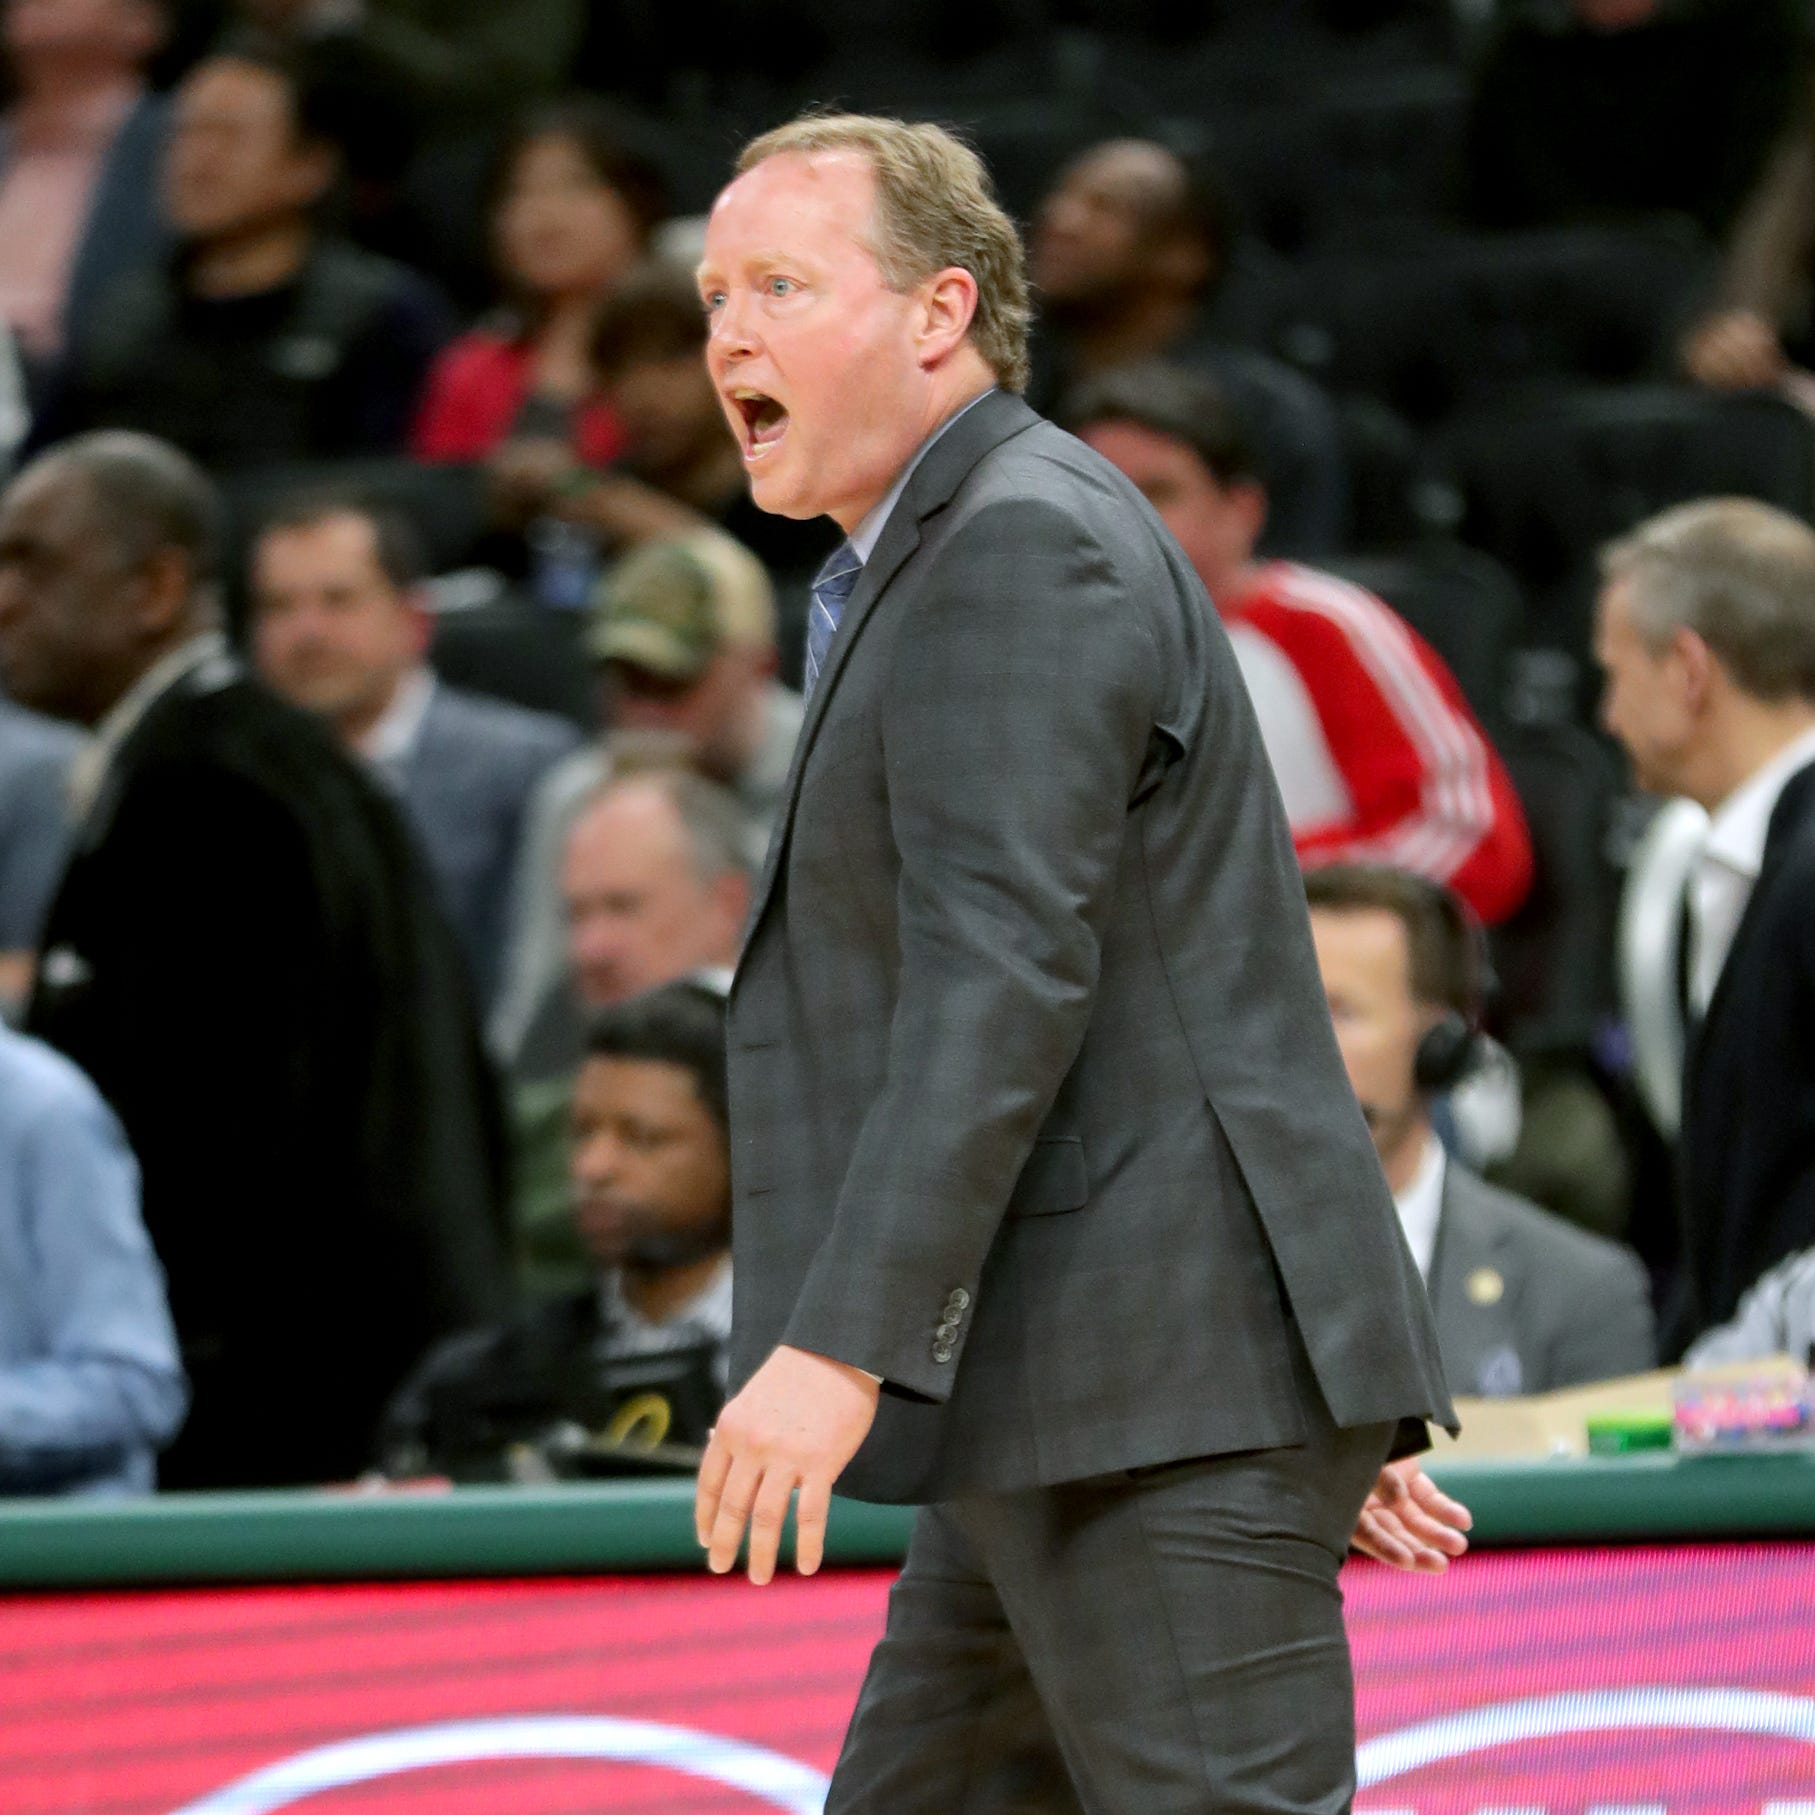 Bucks have adopted their coach's personality, and there's more to Mike Budenholzer than meets the eye